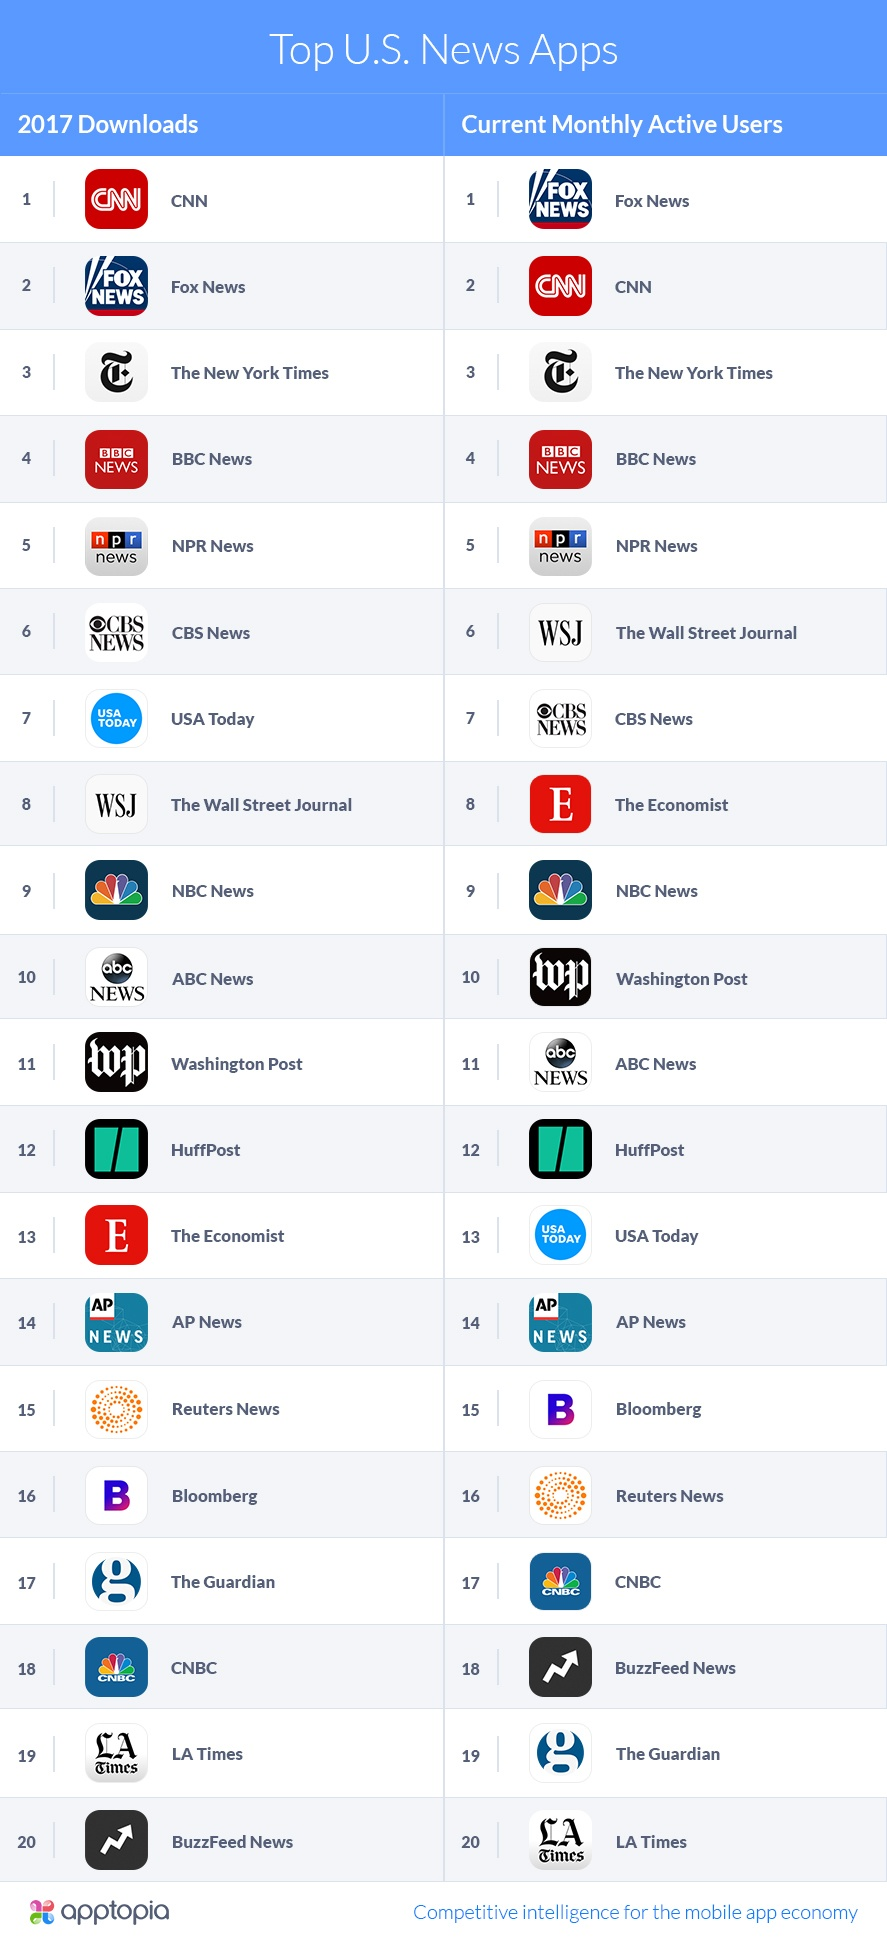 Apptopia-Top U.S. News Apps-v2.jpg